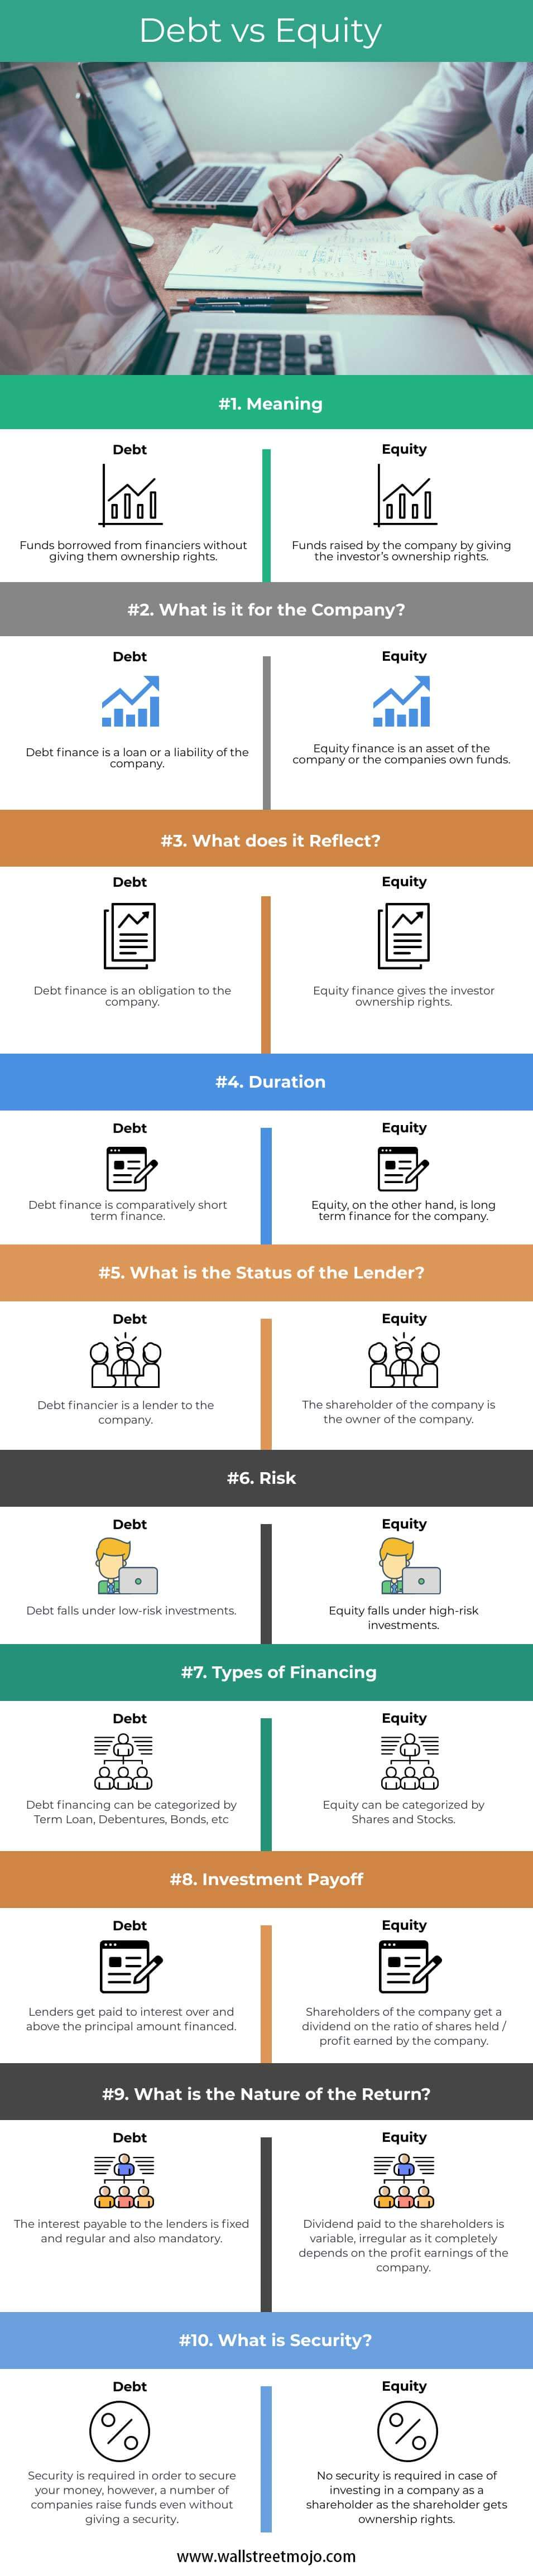 Debt-vs-Equity-info